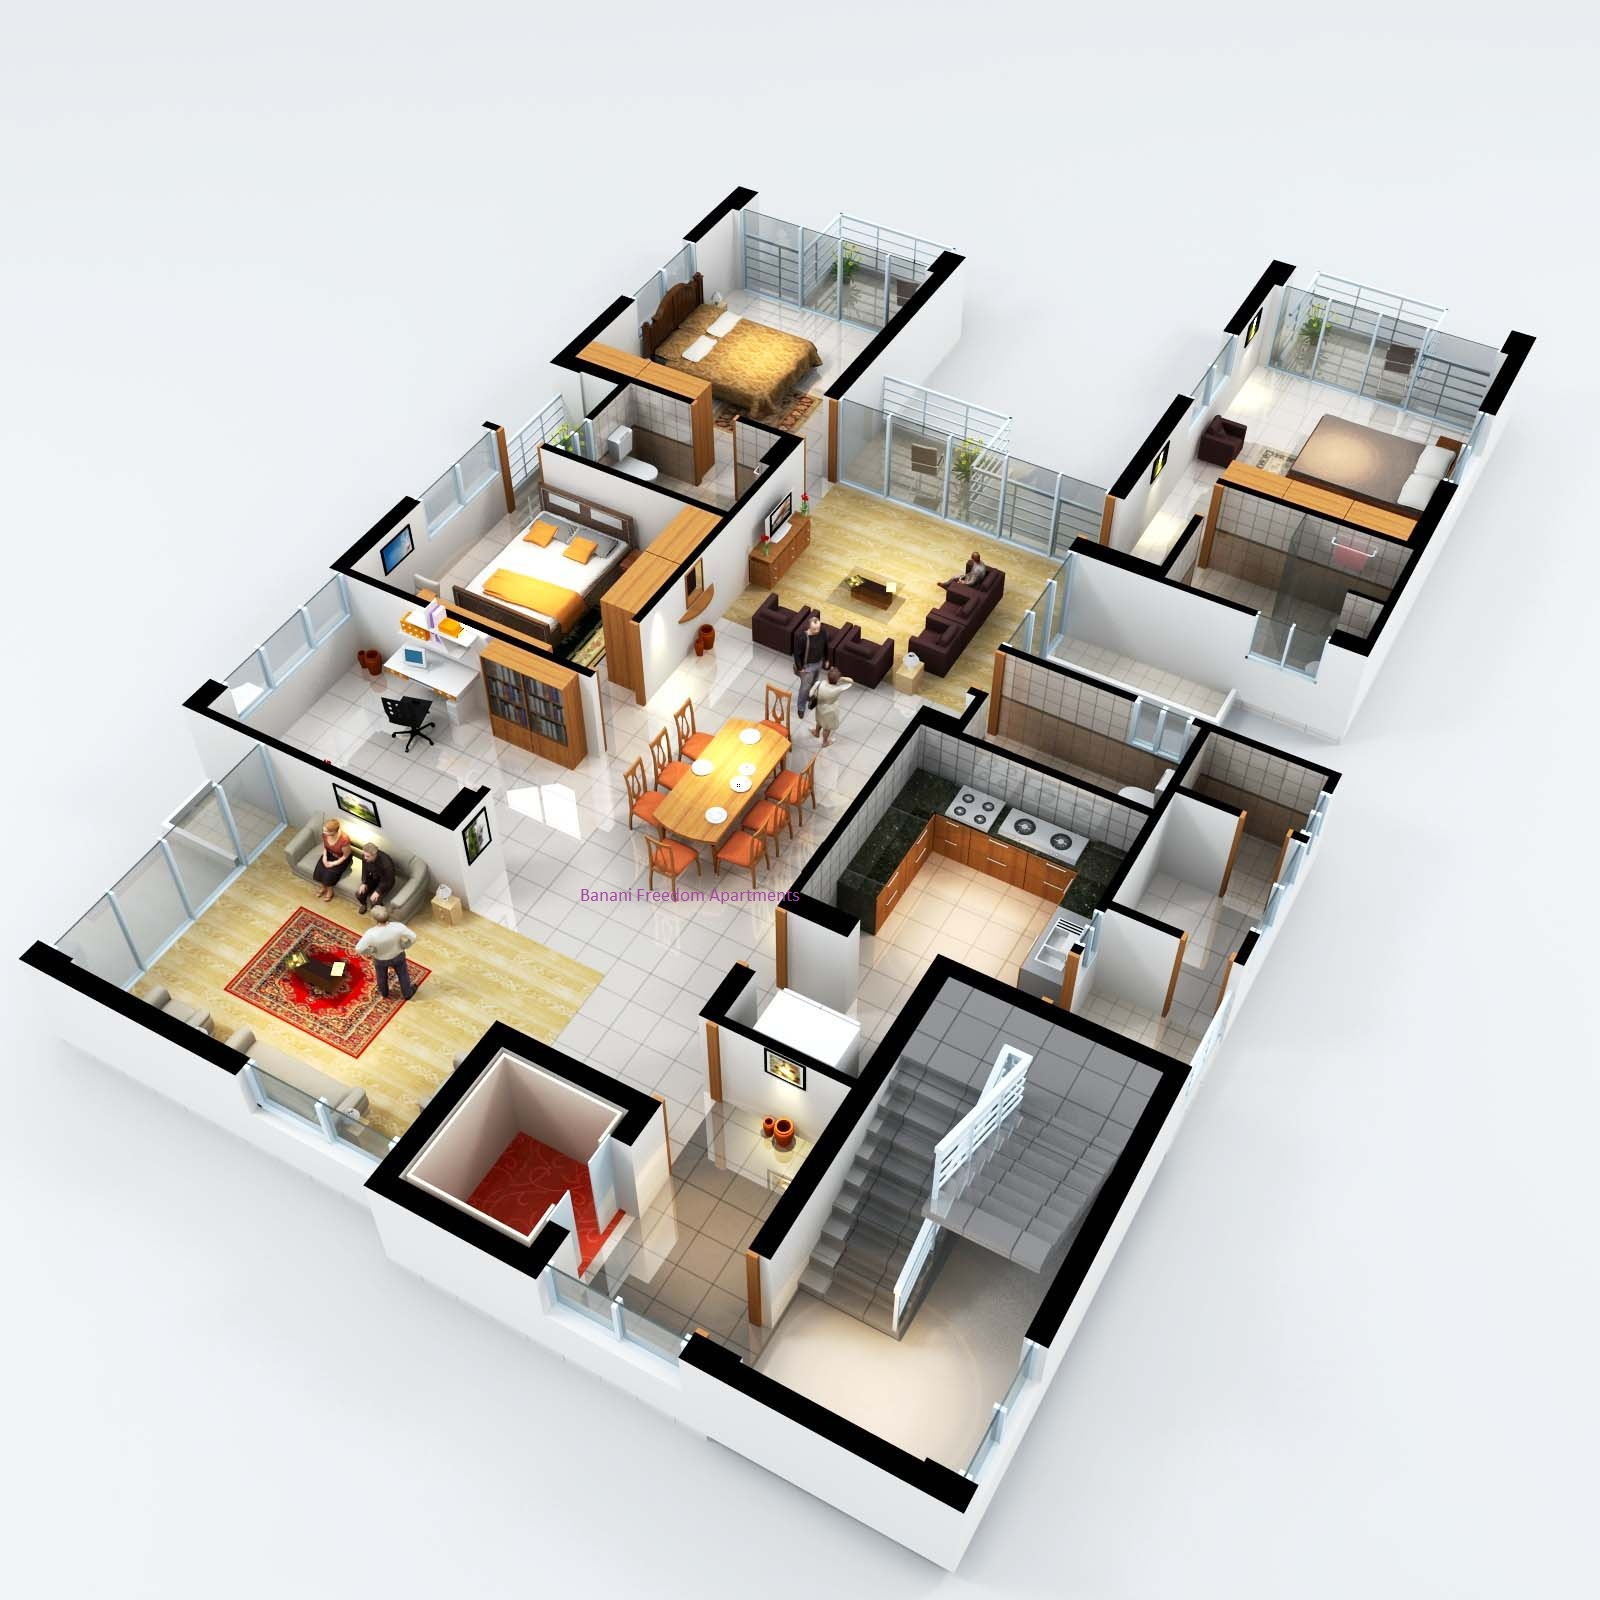 Banani freedom luxury apartments - Modernbedroombathroom house plans ...